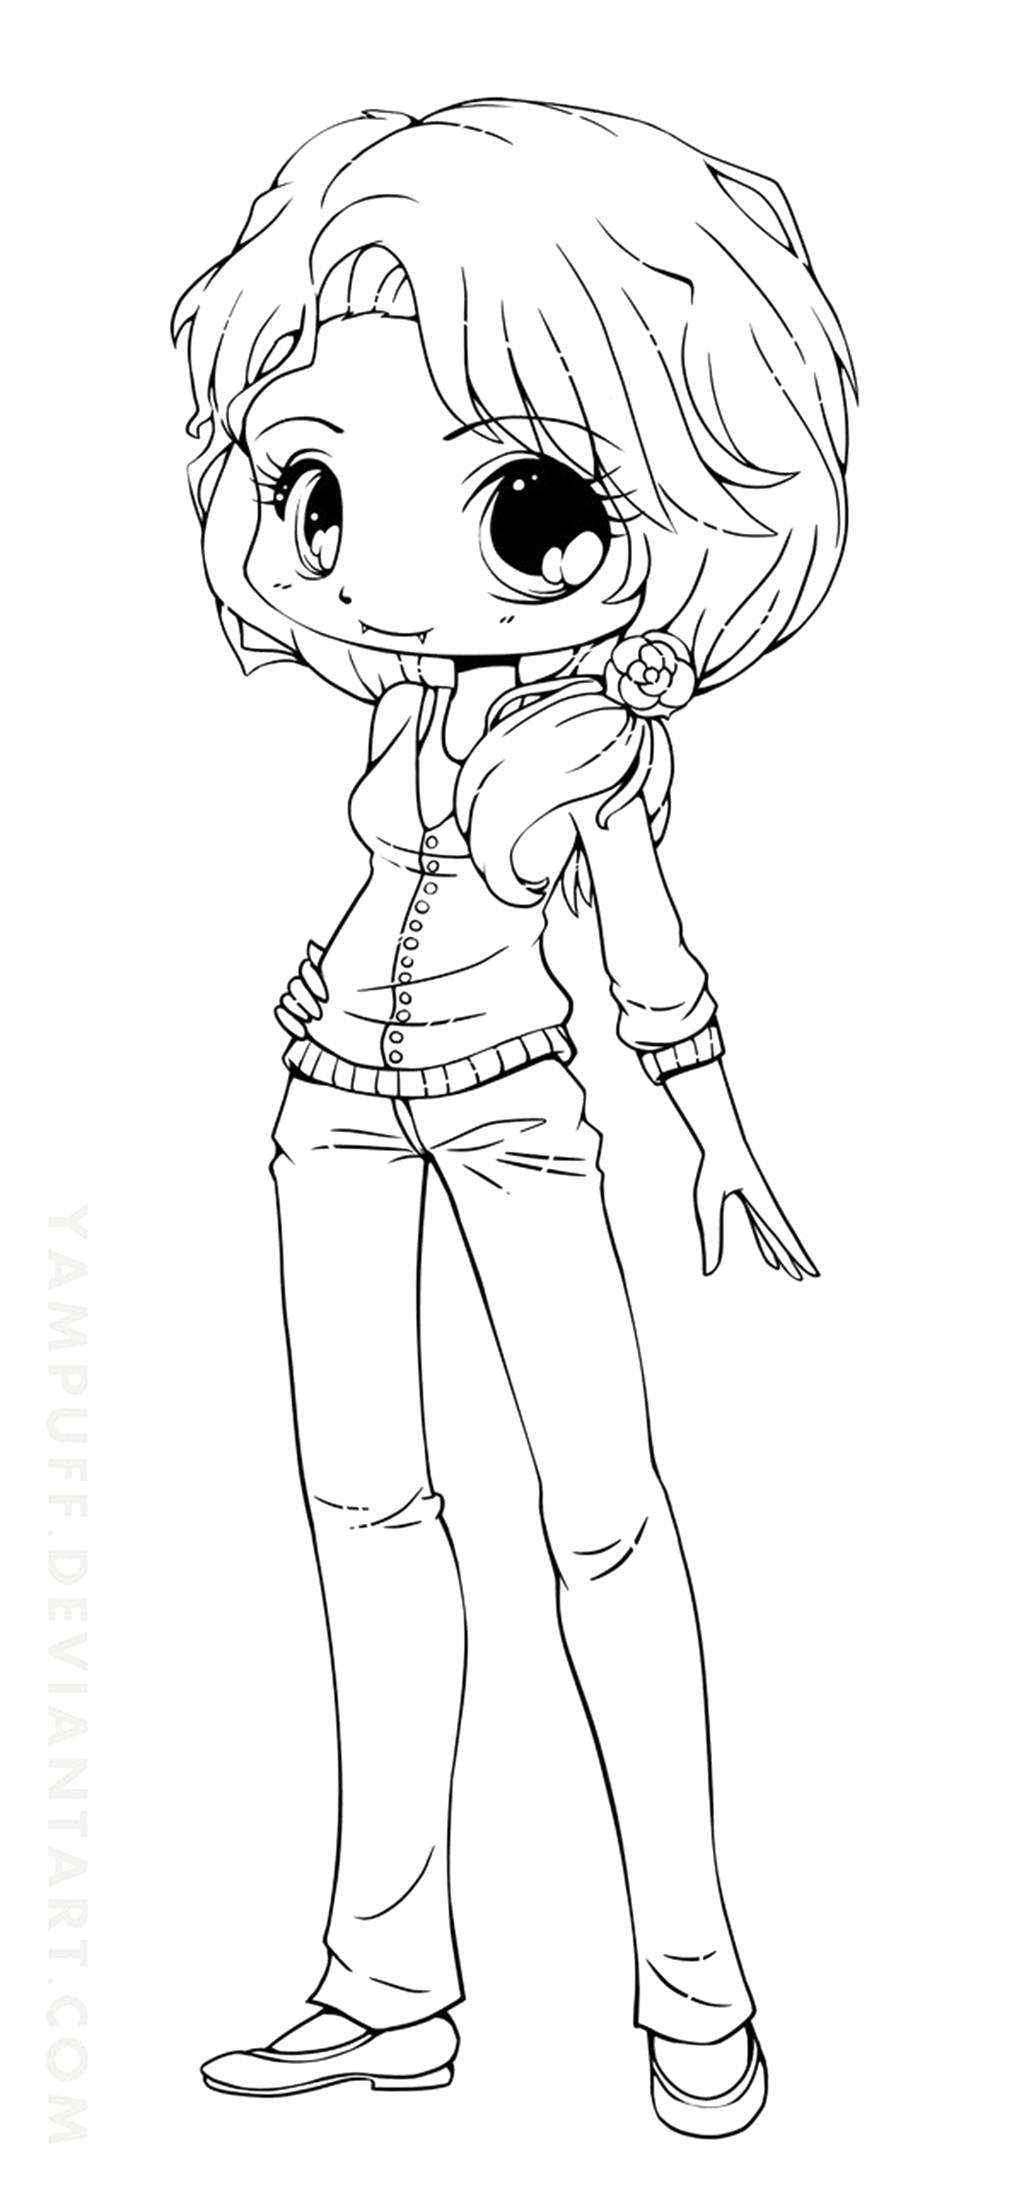 Cute Girls Coloring Pages - Coloring Home